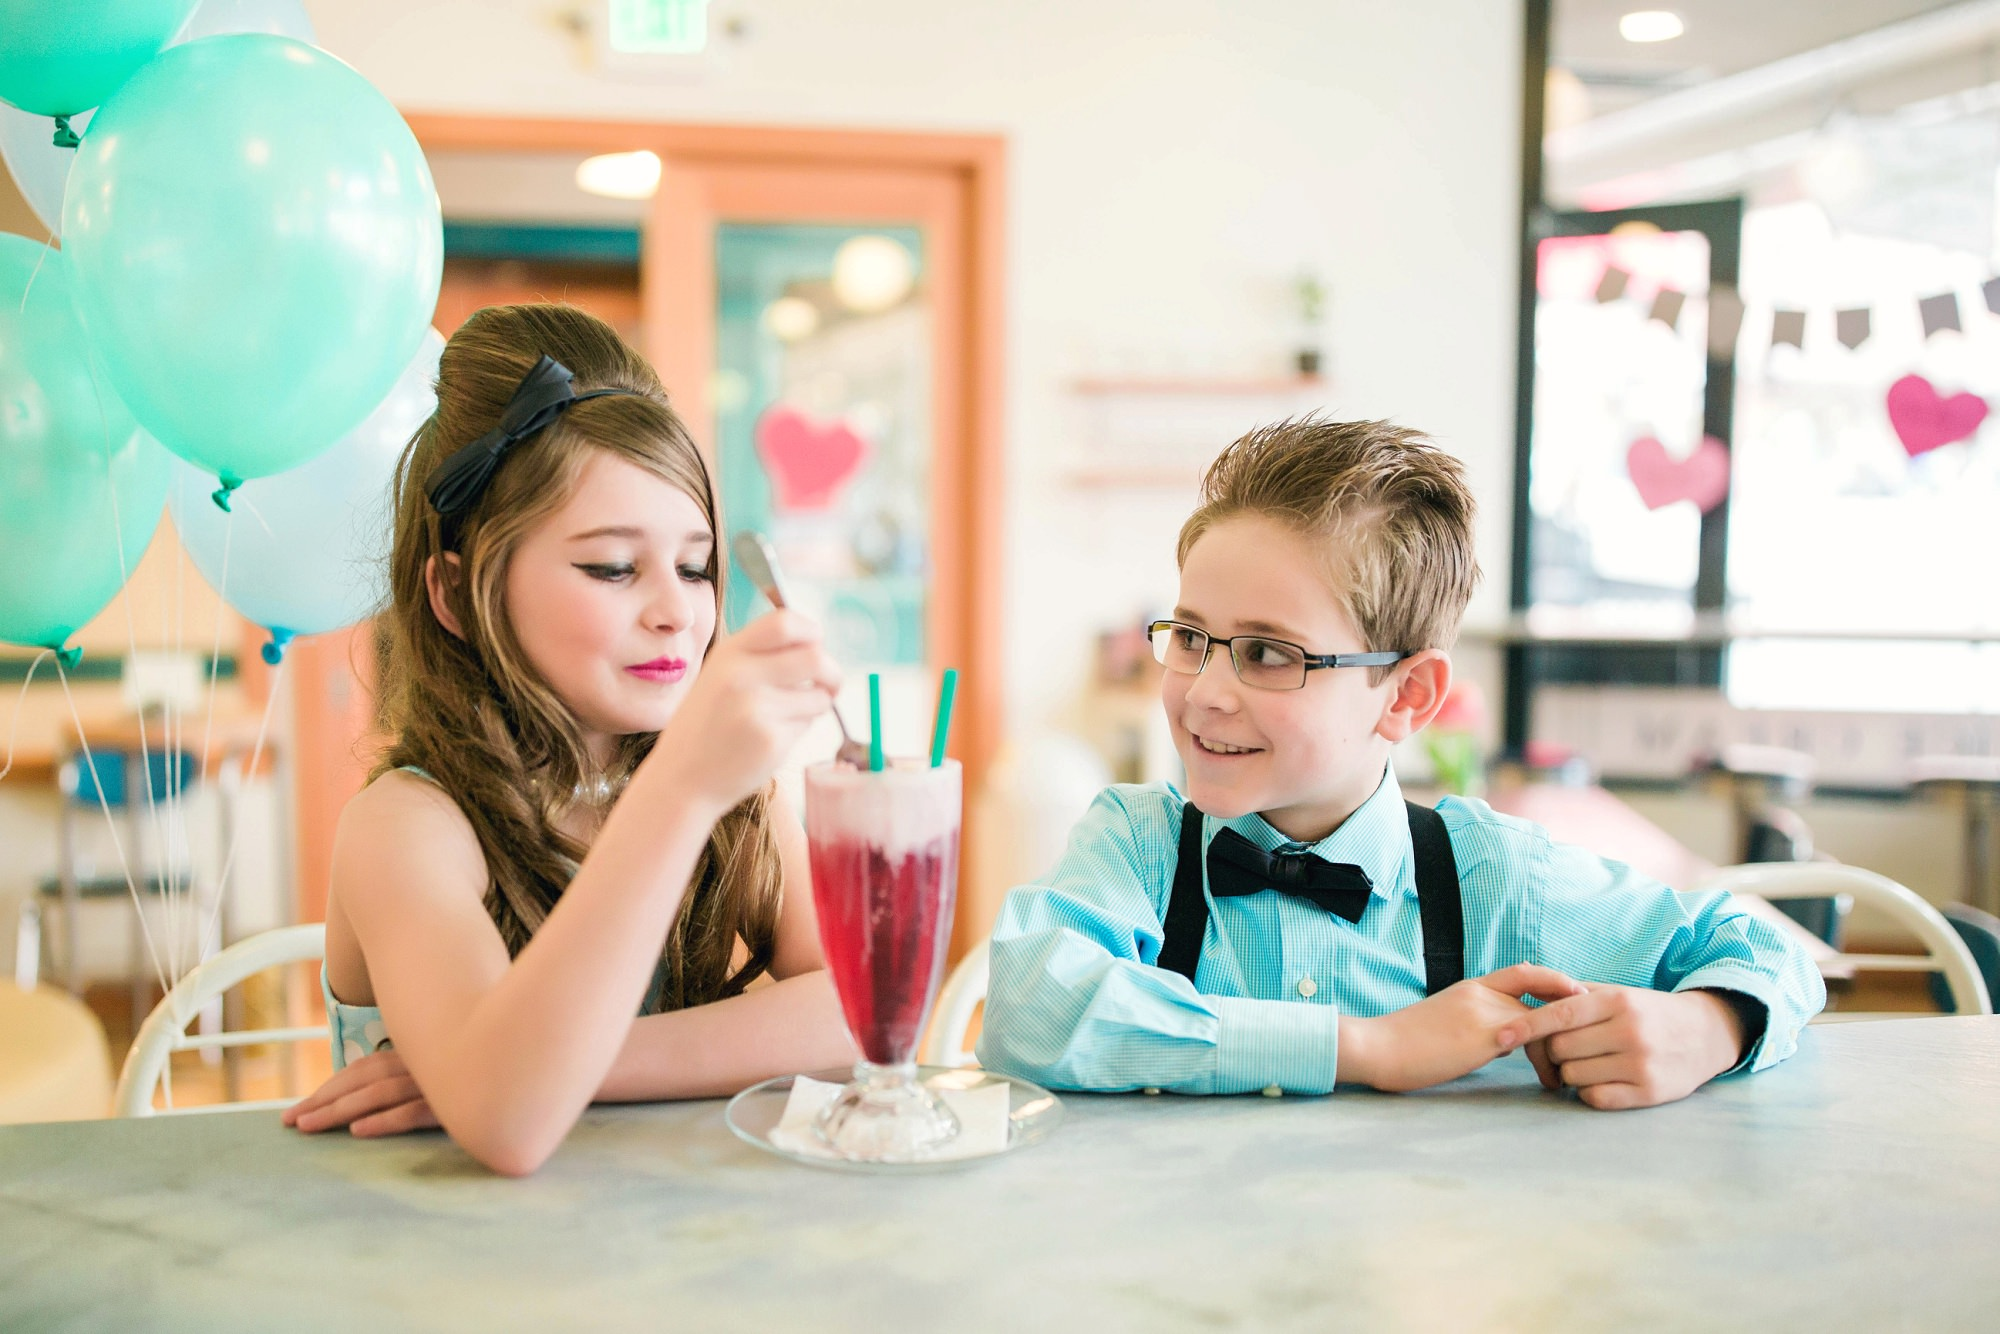 retro style kids photo shoot in an ice cream shop